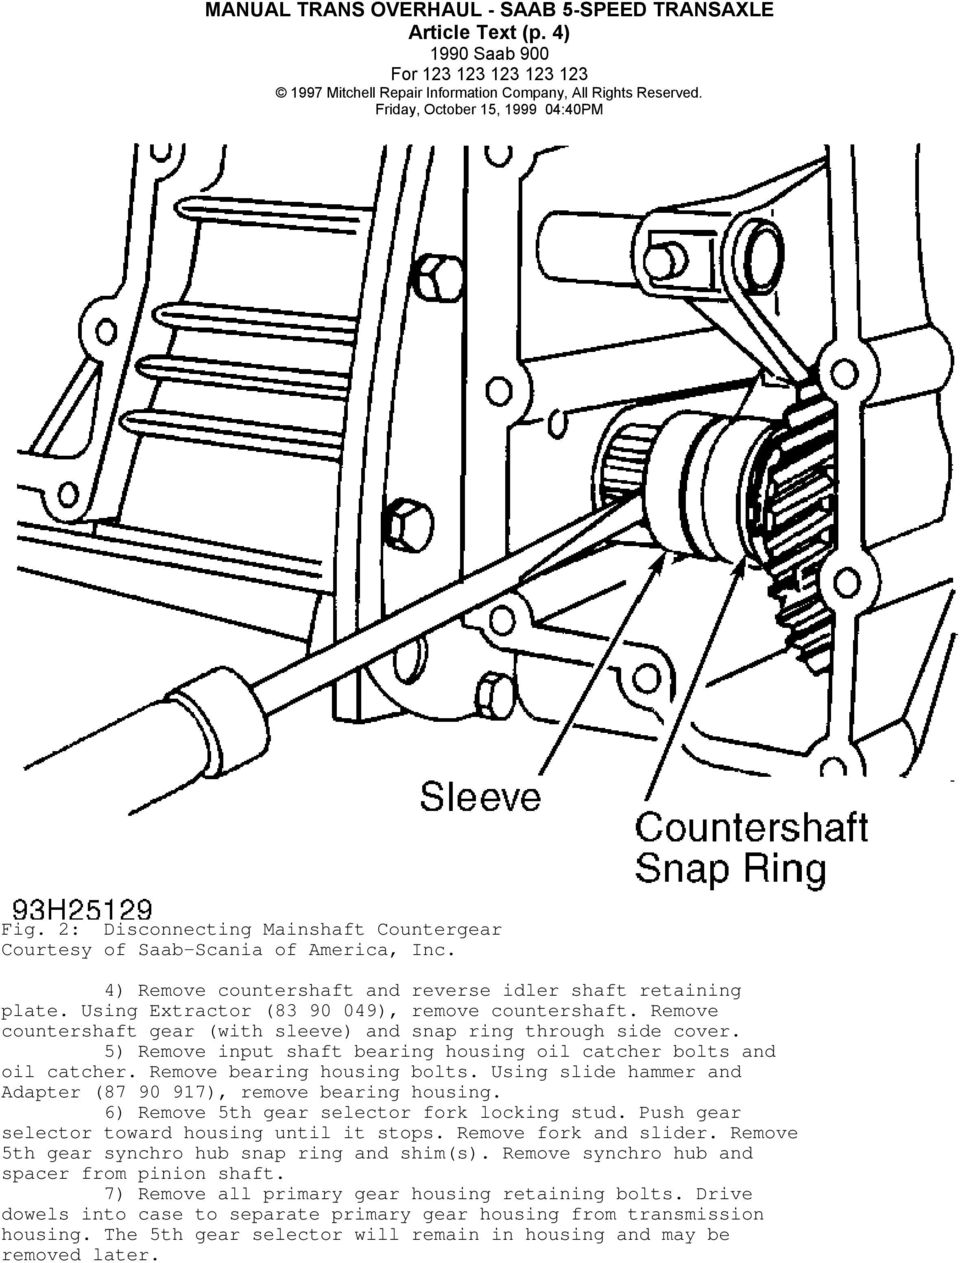 article beginning application identification description lubrication GM Corporate 10 Bolt Front Axle Diagram using slide hammer and adapter 87 90 917 remove bearing housing 6